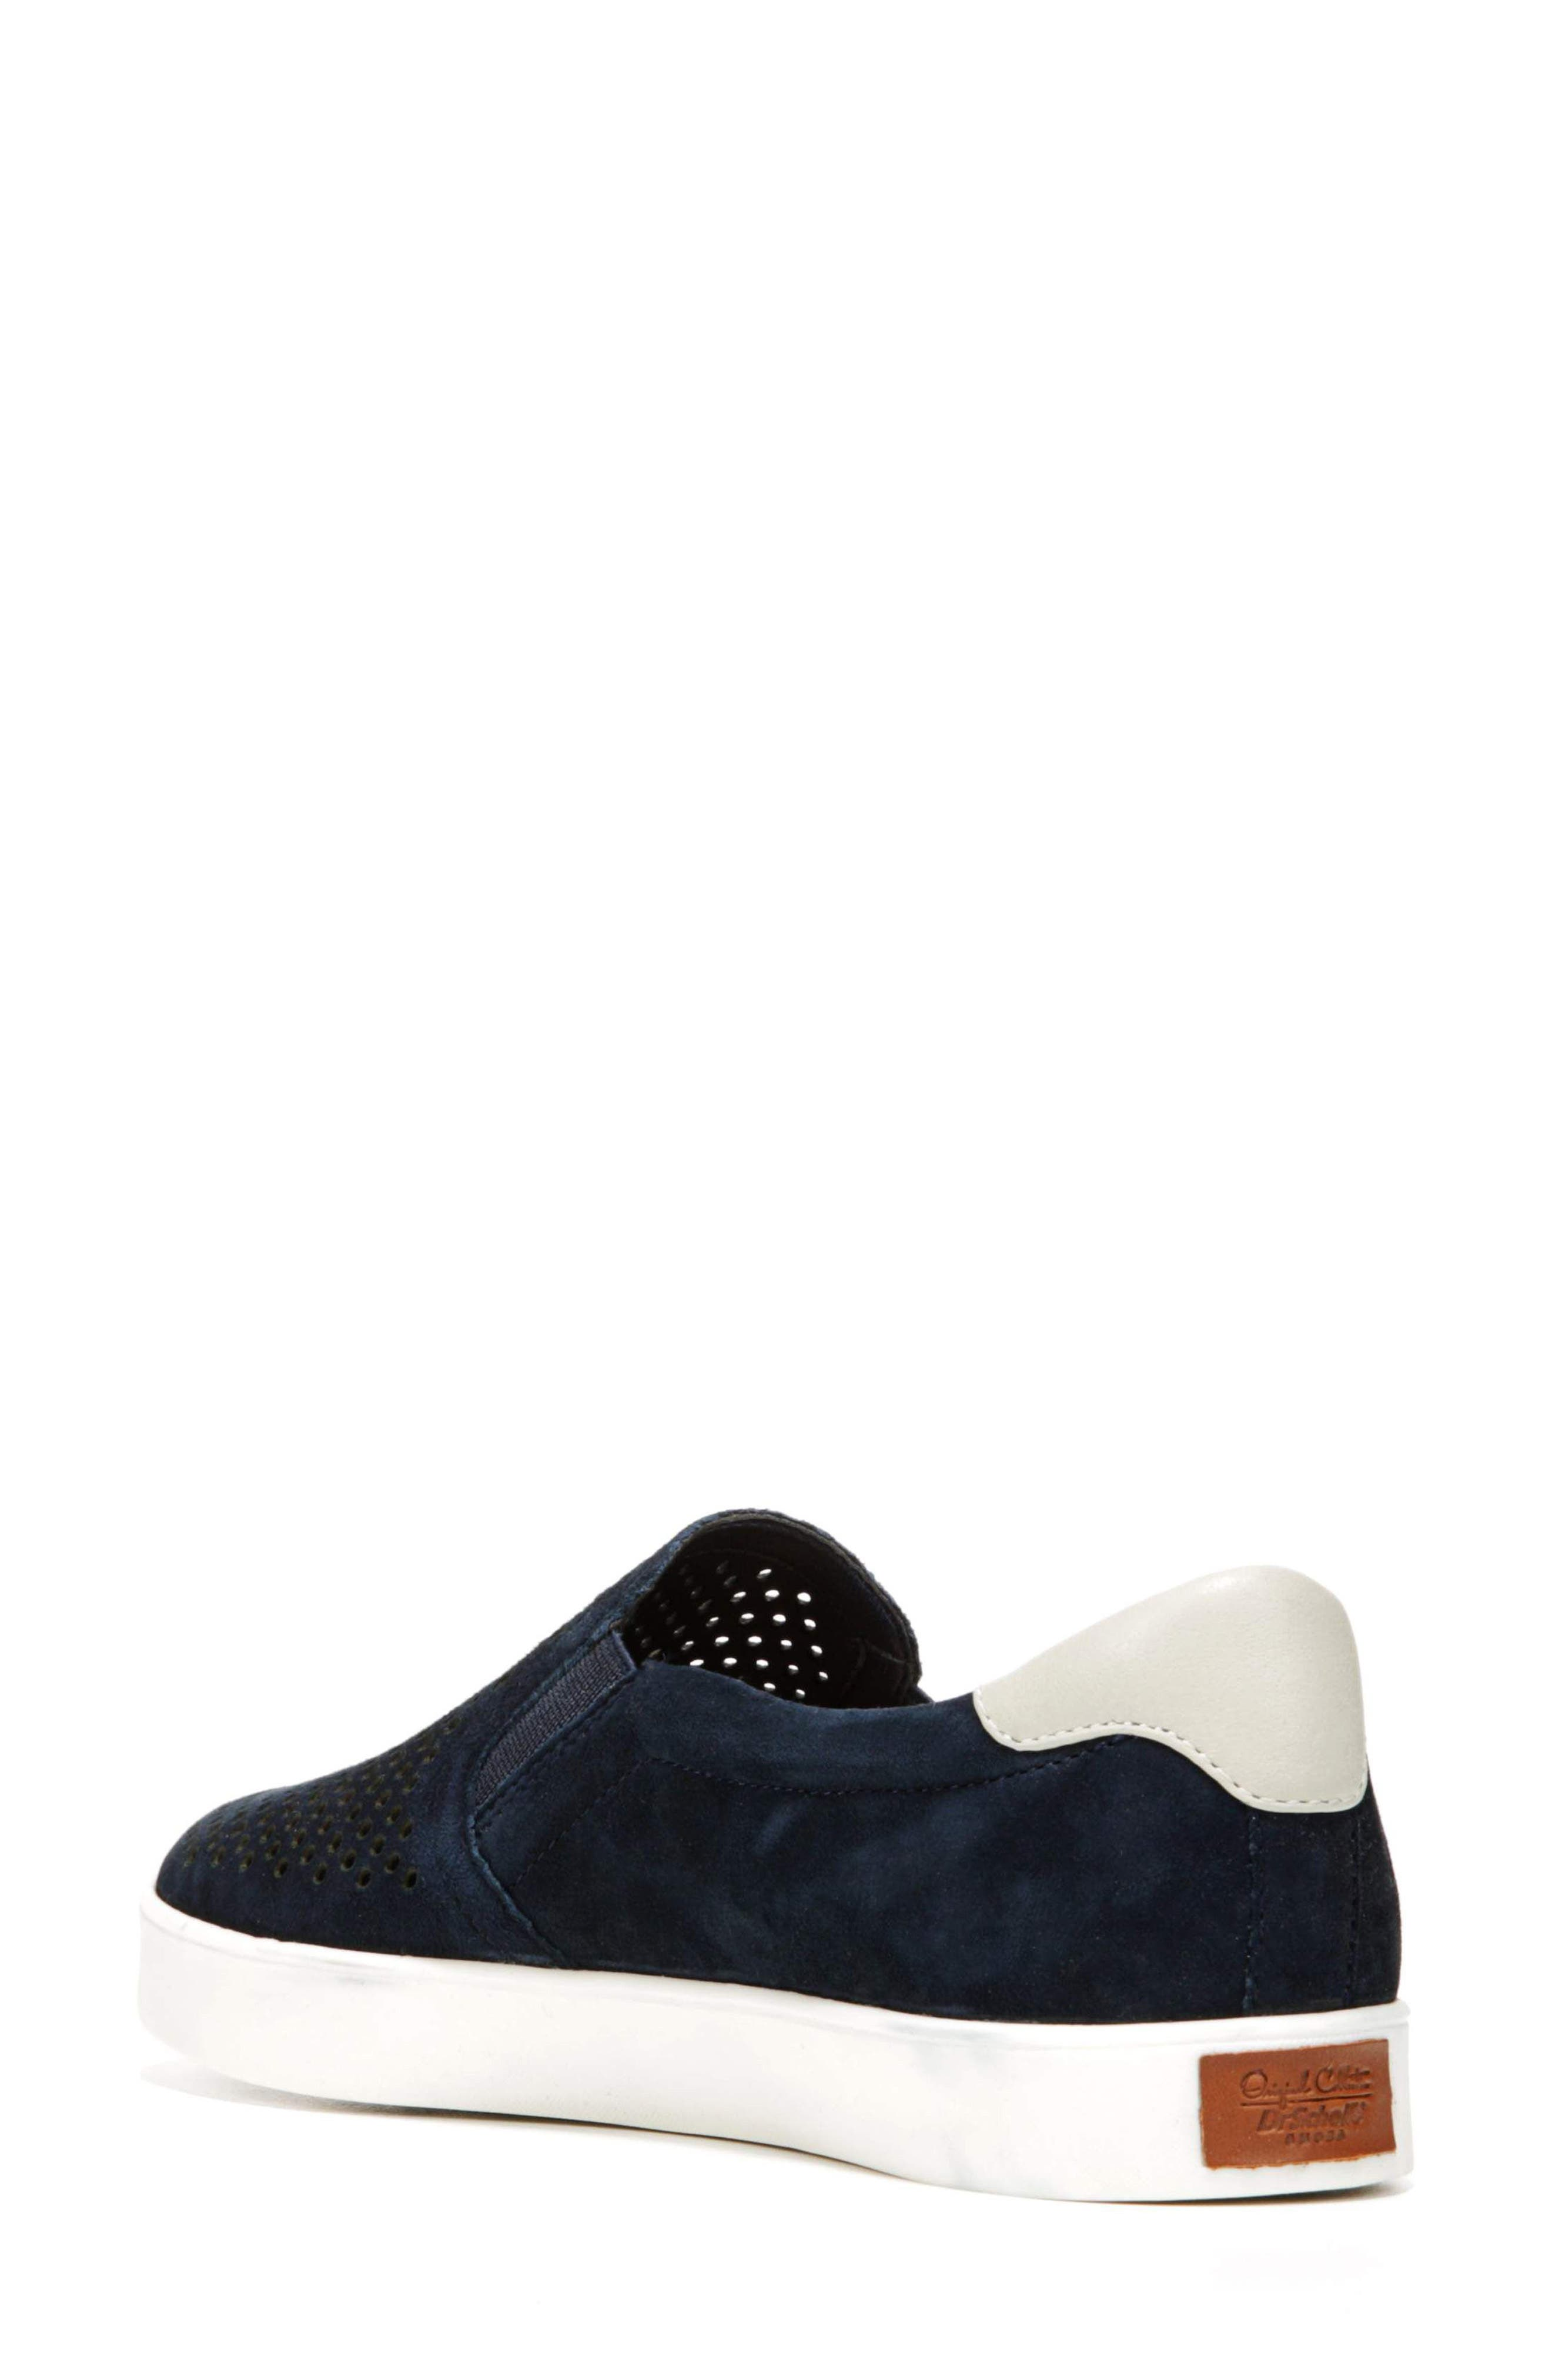 Original Collection 'Scout' Slip On Sneaker,                             Alternate thumbnail 2, color,                             NAVY SUEDE